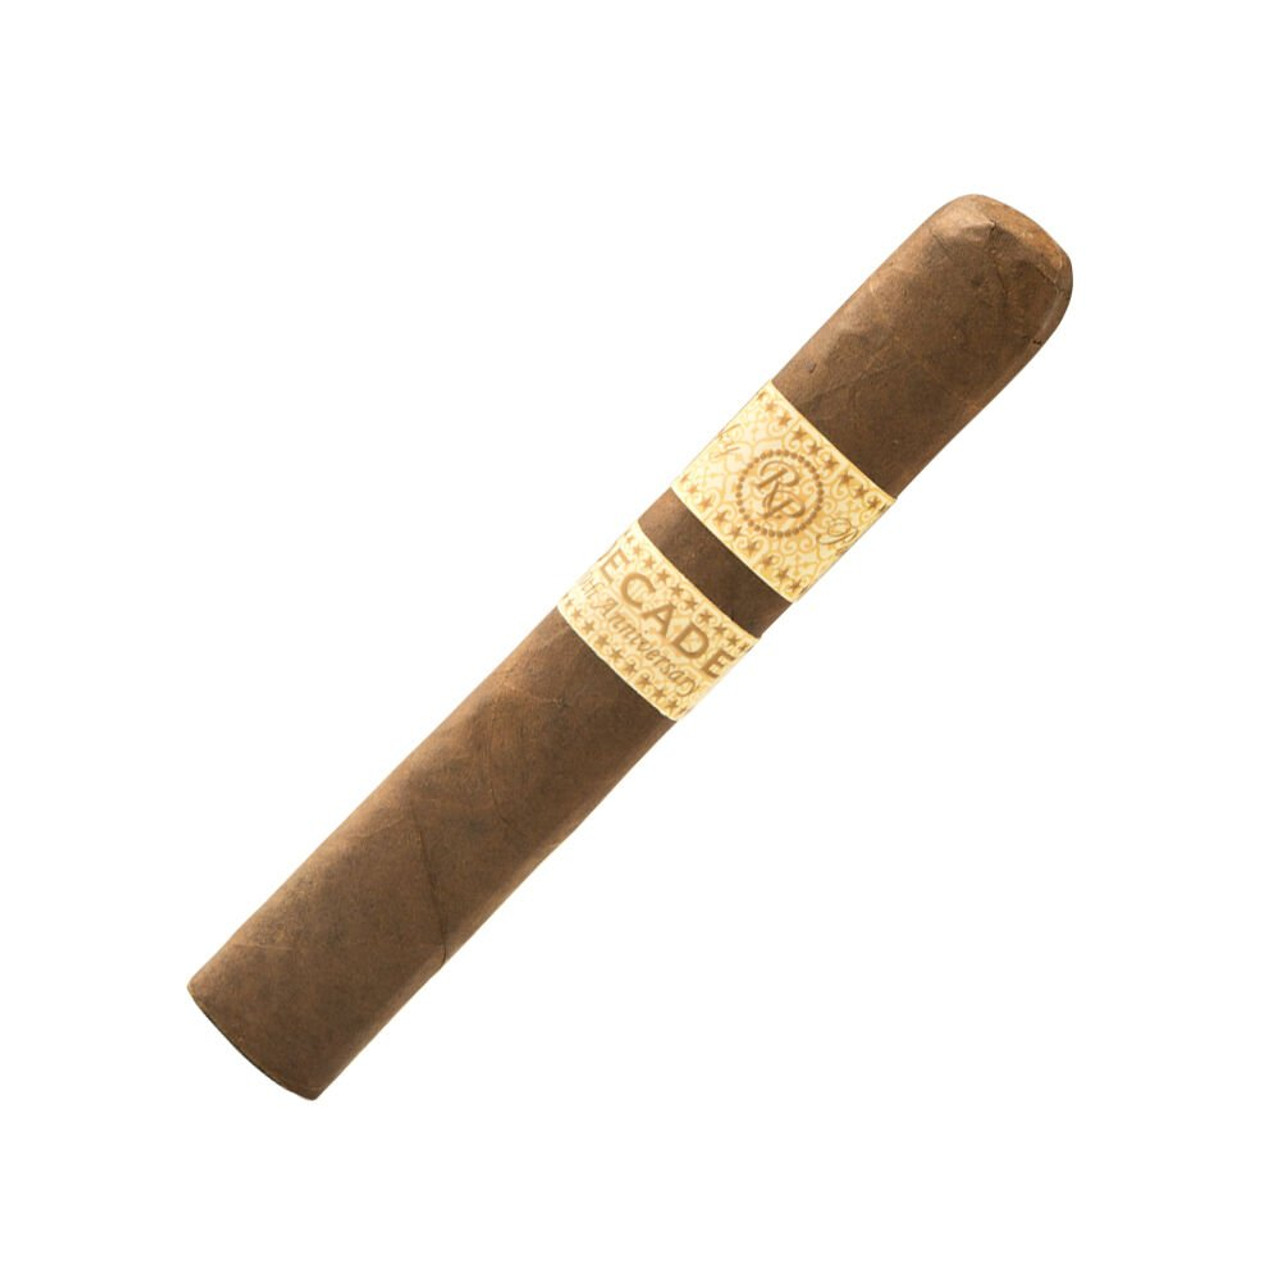 Rocky Patel Decade Robusto Cigars - 5 x 50 (Pack of 5)